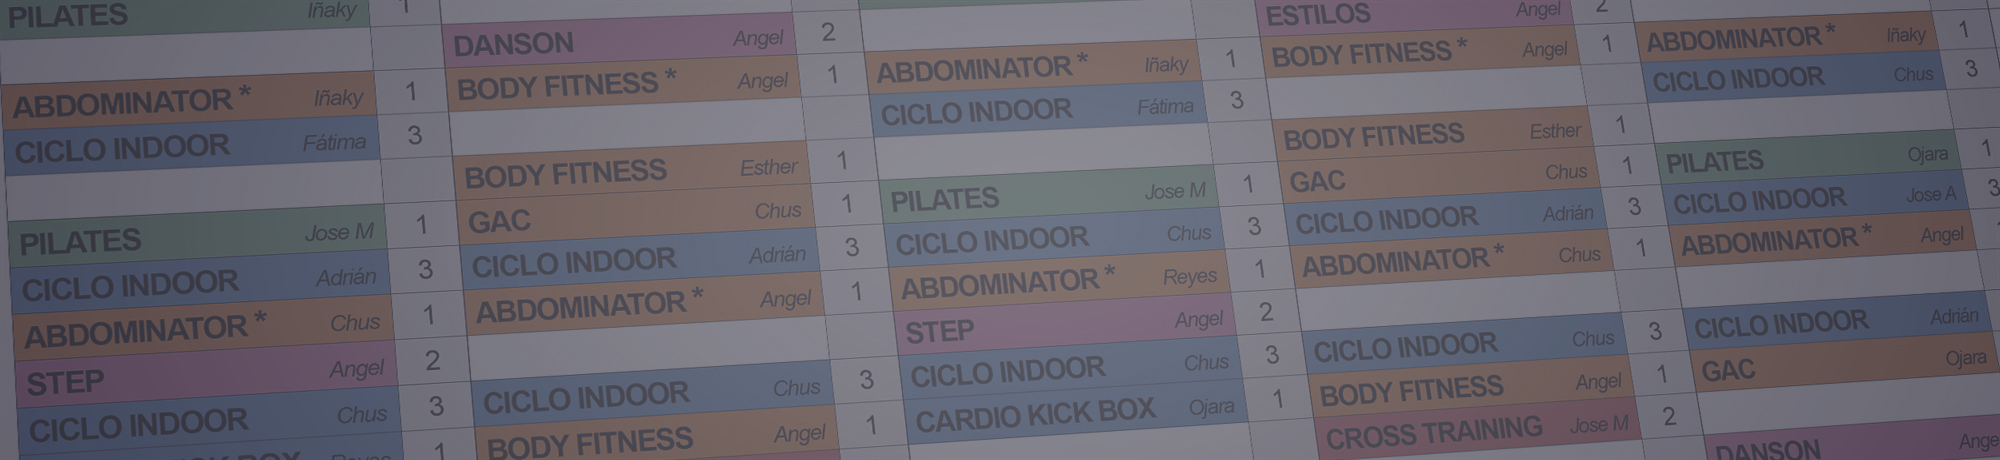 Horario Lowgym